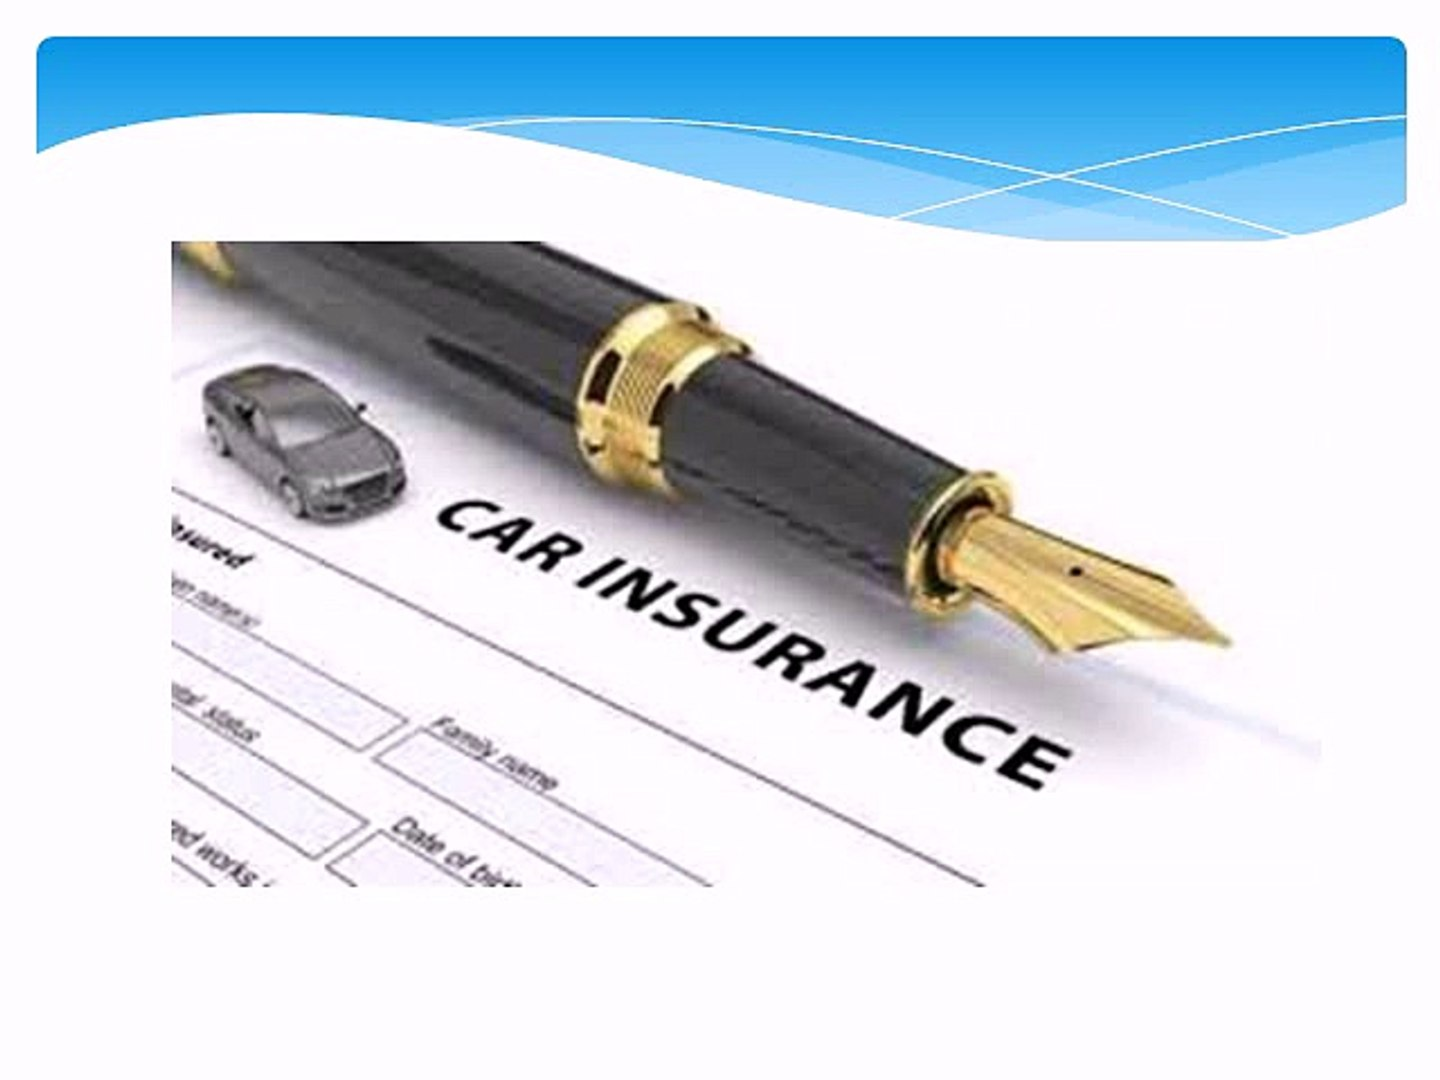 Car Insurance Brokers - How to Land the Best Insurance Deals